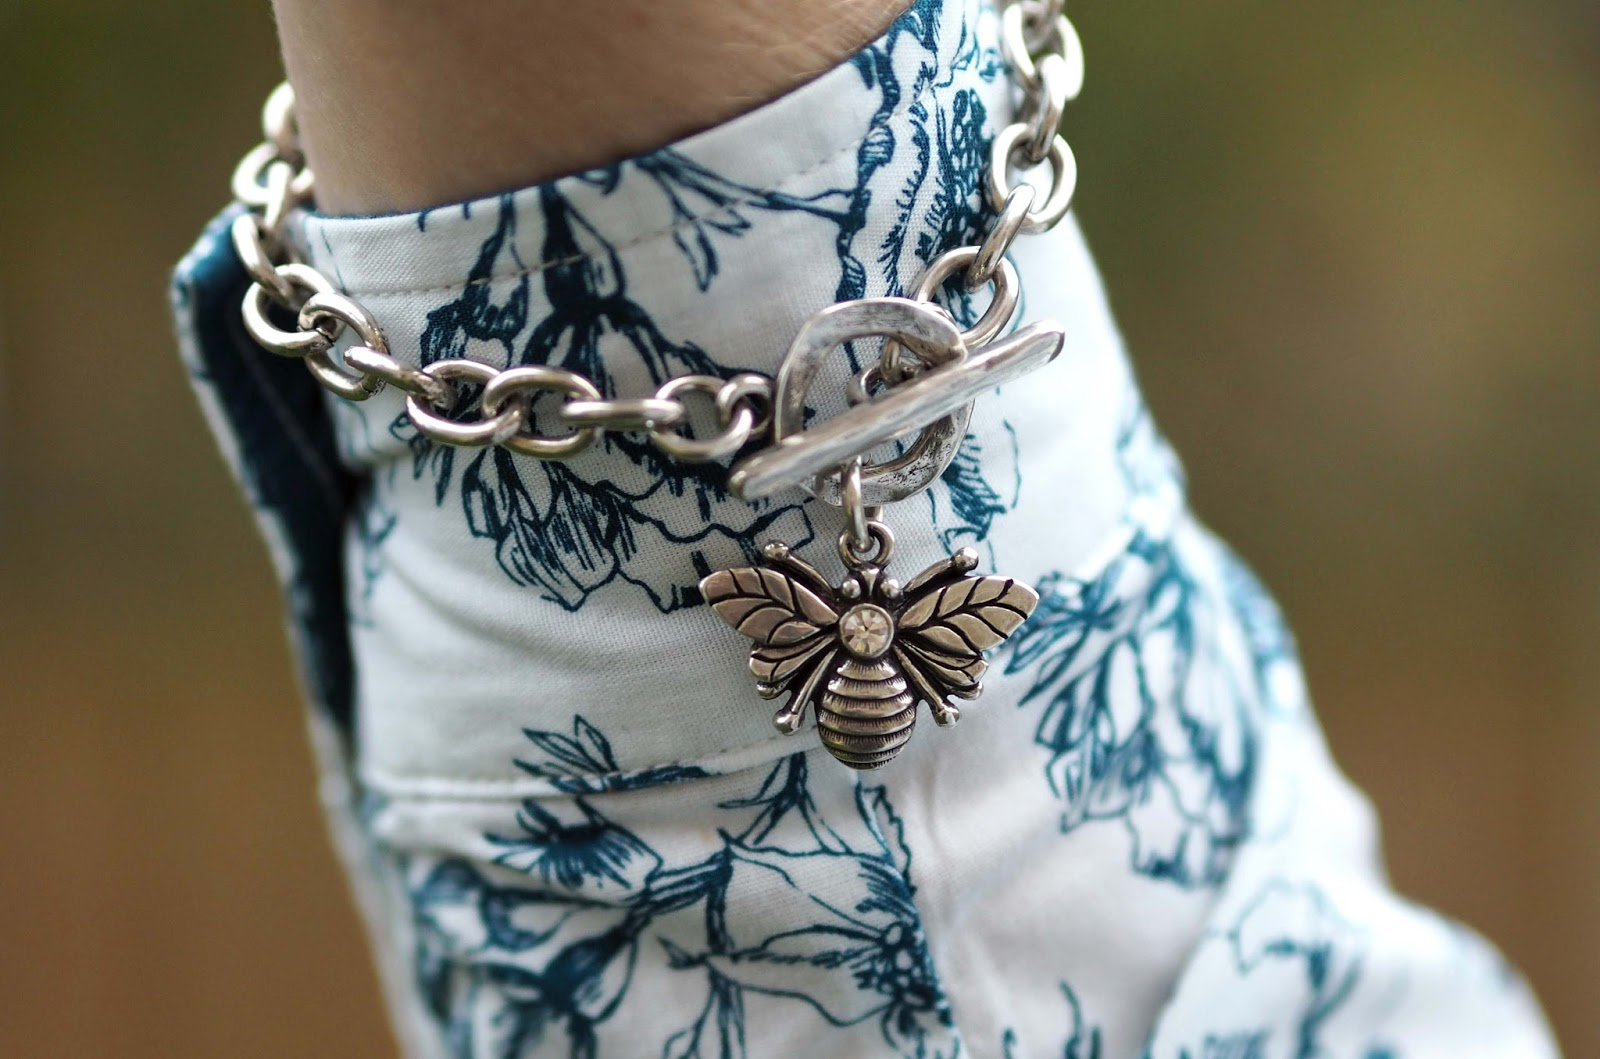 Tulchan floral shirt with skinny jeans and high heeled ankle boots, over 40 style, bee bracelet